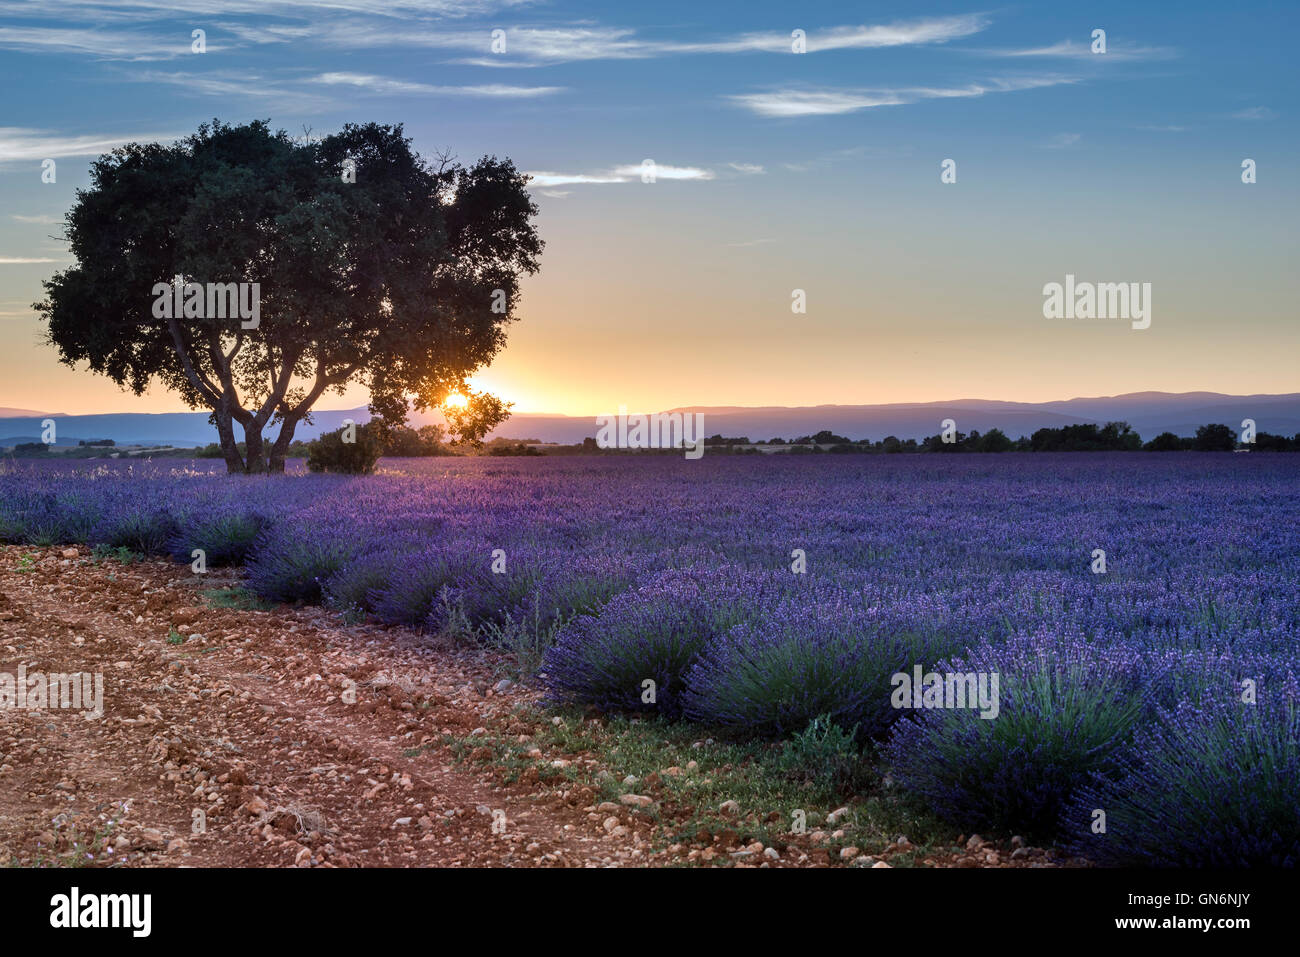 Lavender field summer sunset landscape Stock Photo